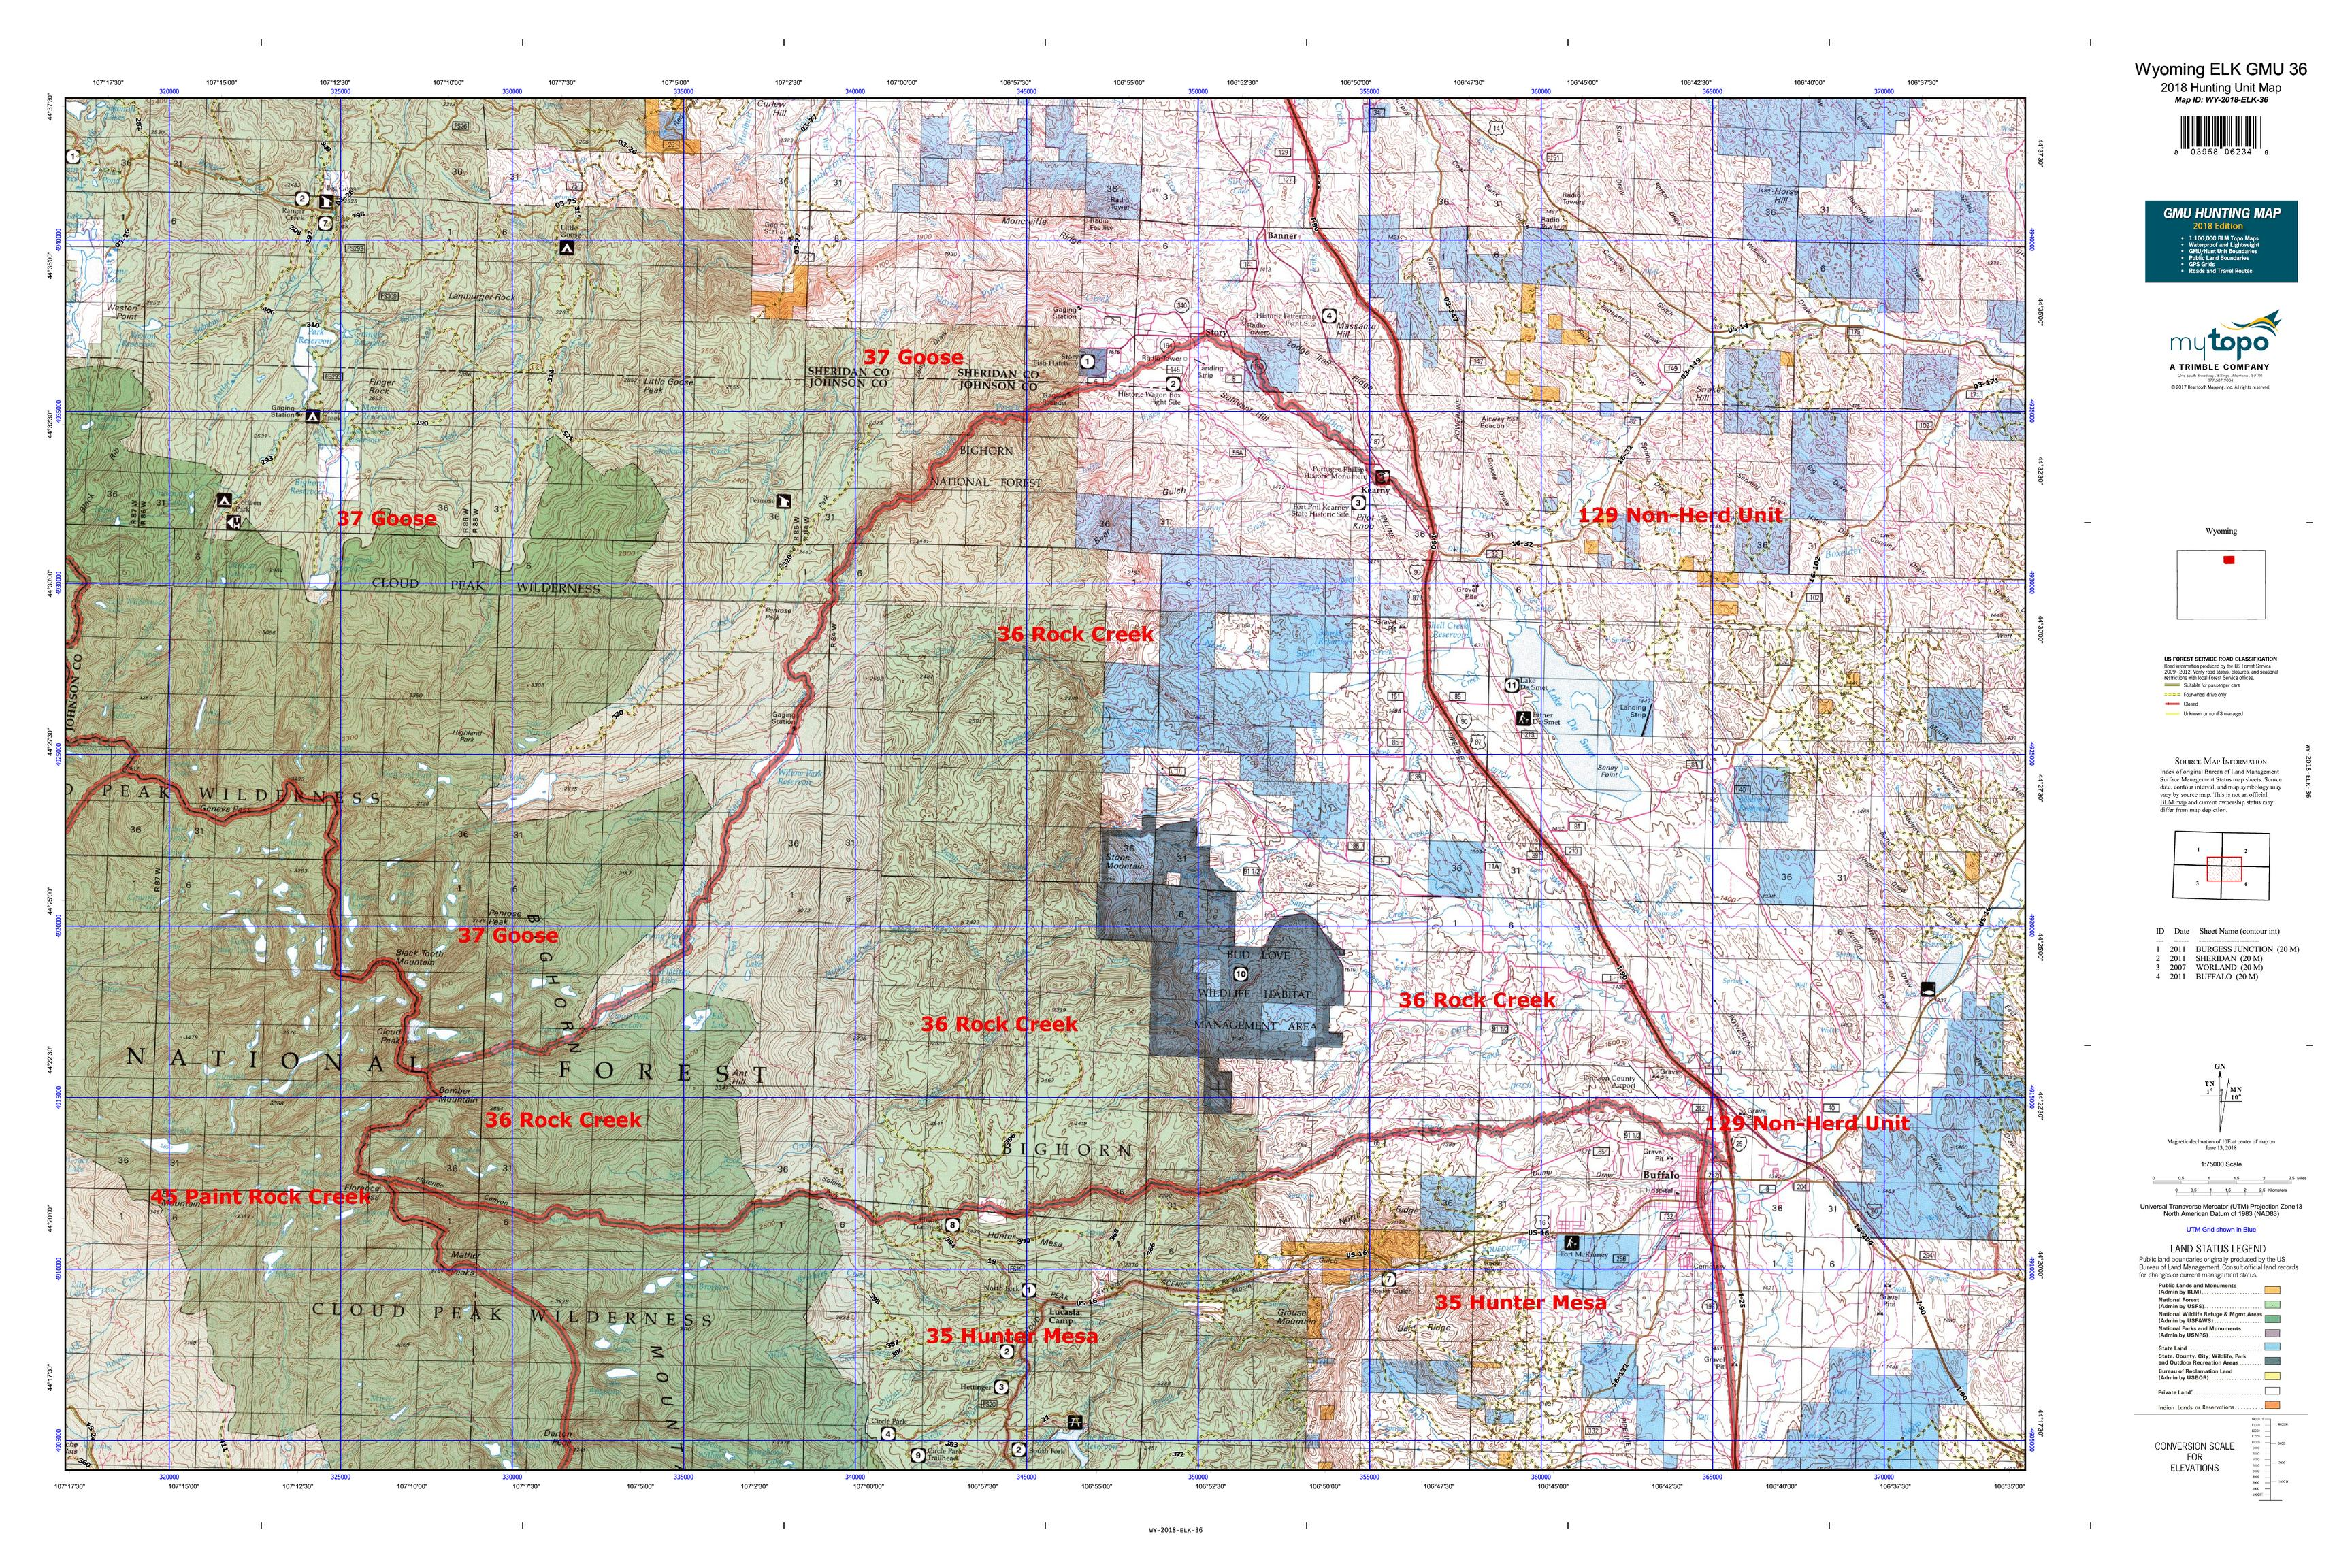 Wyoming ELK GMU 36 Map | MyTopo